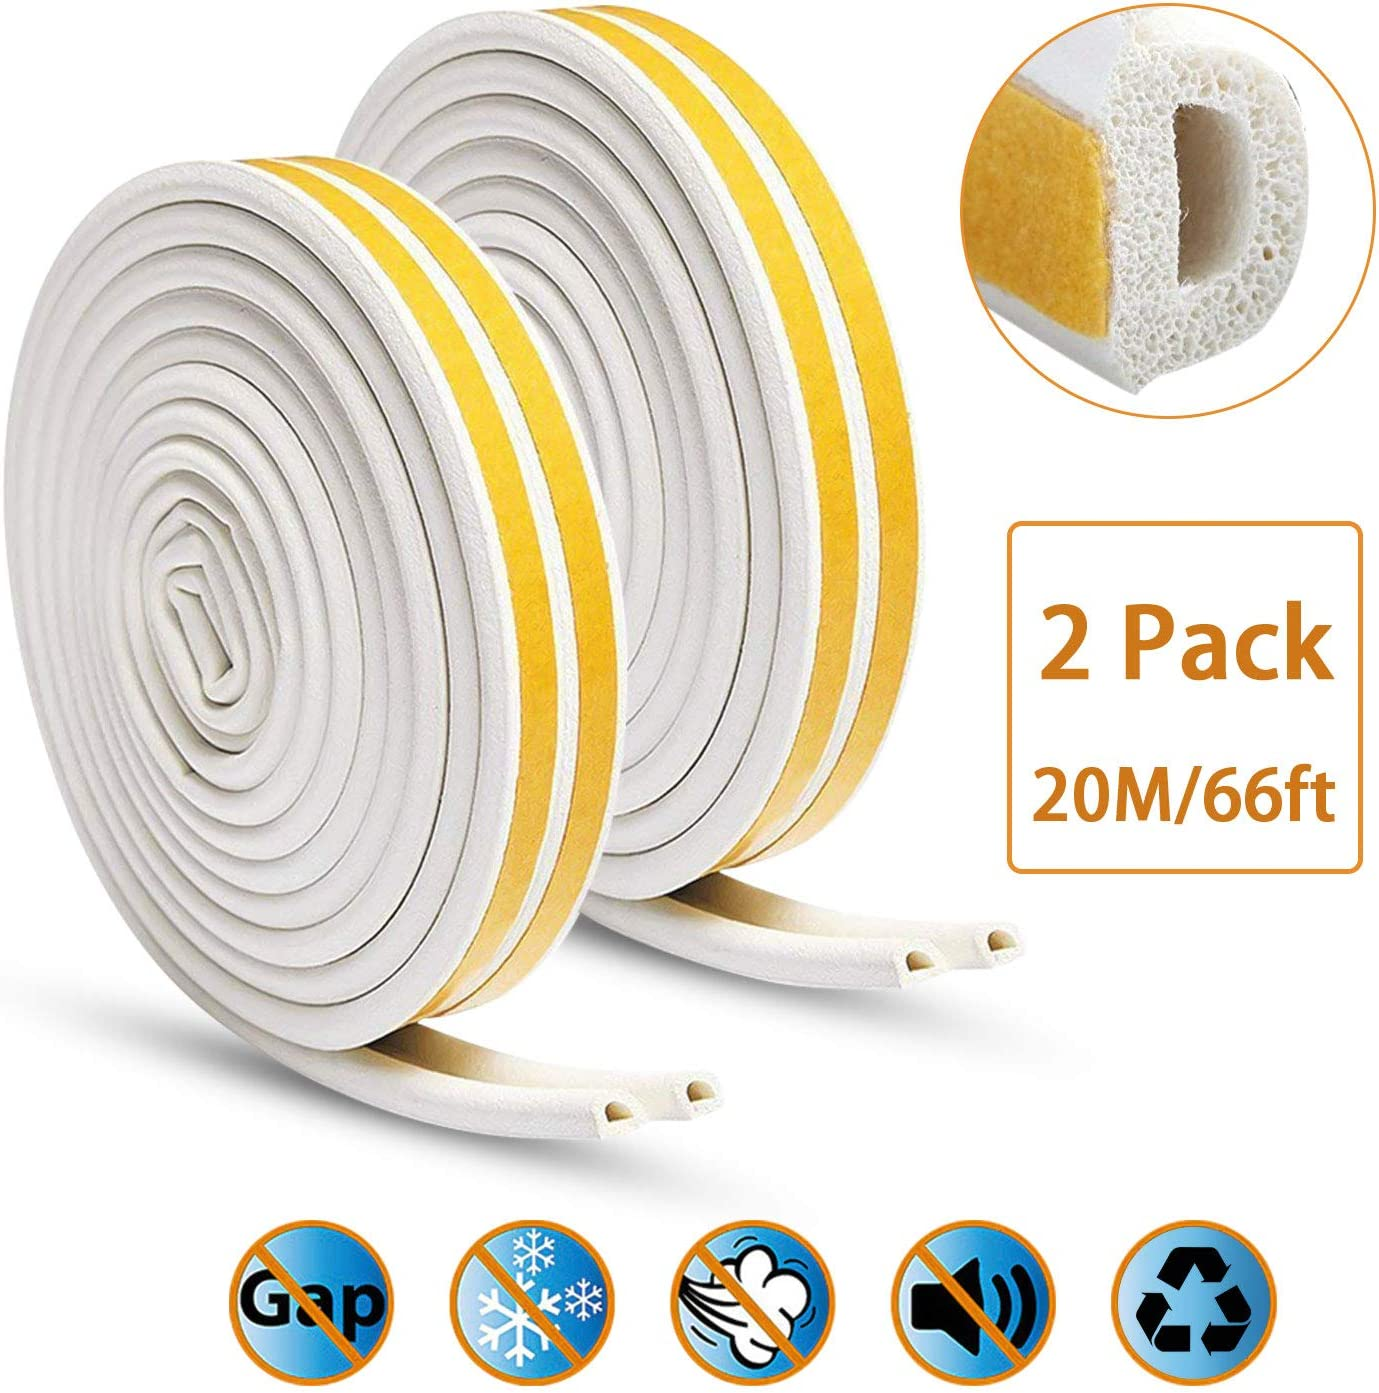 KELIIYO Door Weather Stripping, Window Seal Strip for Doors and Windows- Self-adhisive Foam Weather Strip Door Seal | Soundproof Seal Strip Insulation Gap Blocker Epdm D Type 66ft(20m) 2 Pack (White)